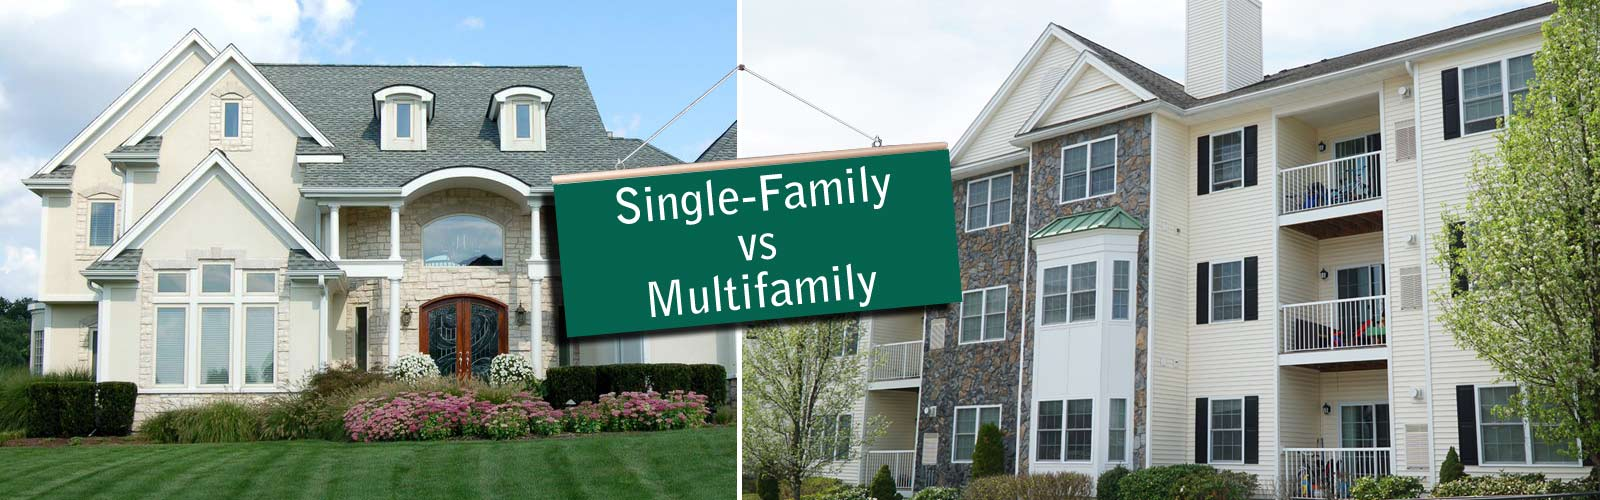 Single-Family vs Multifamily Rentals